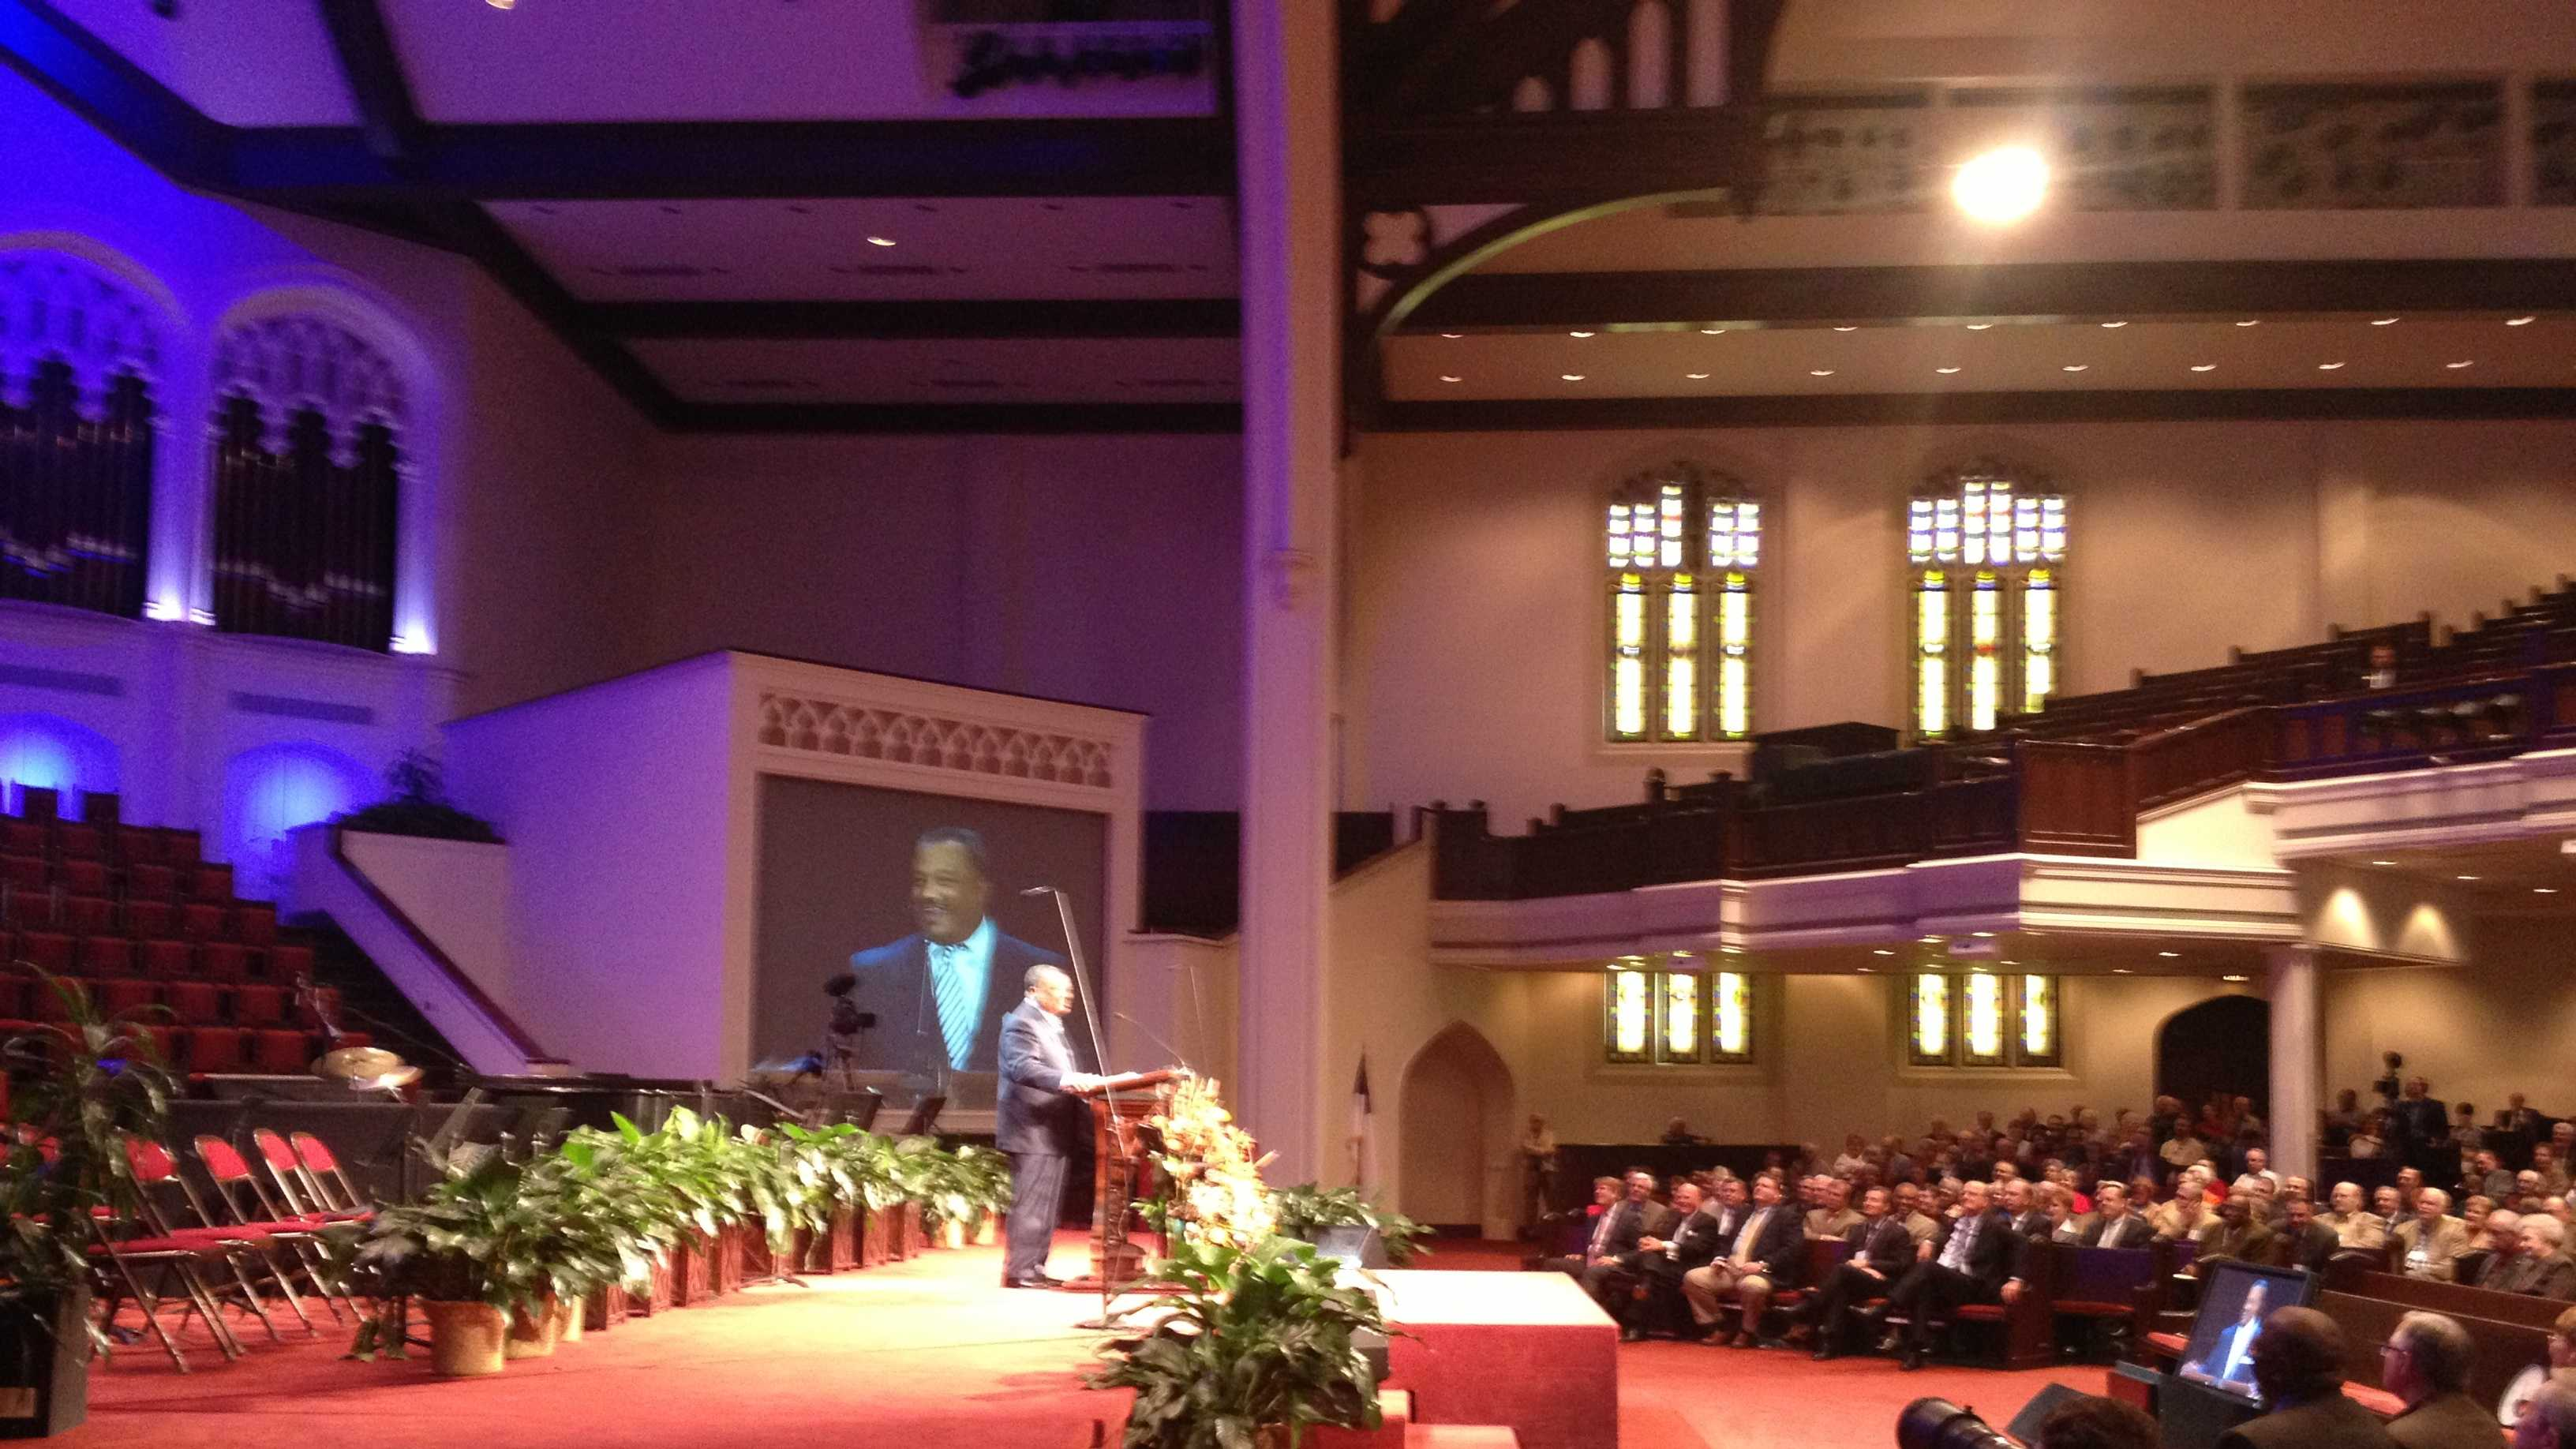 Southern Baptist Convention President Fred Luter speaks at First Baptist Church of Jackson.